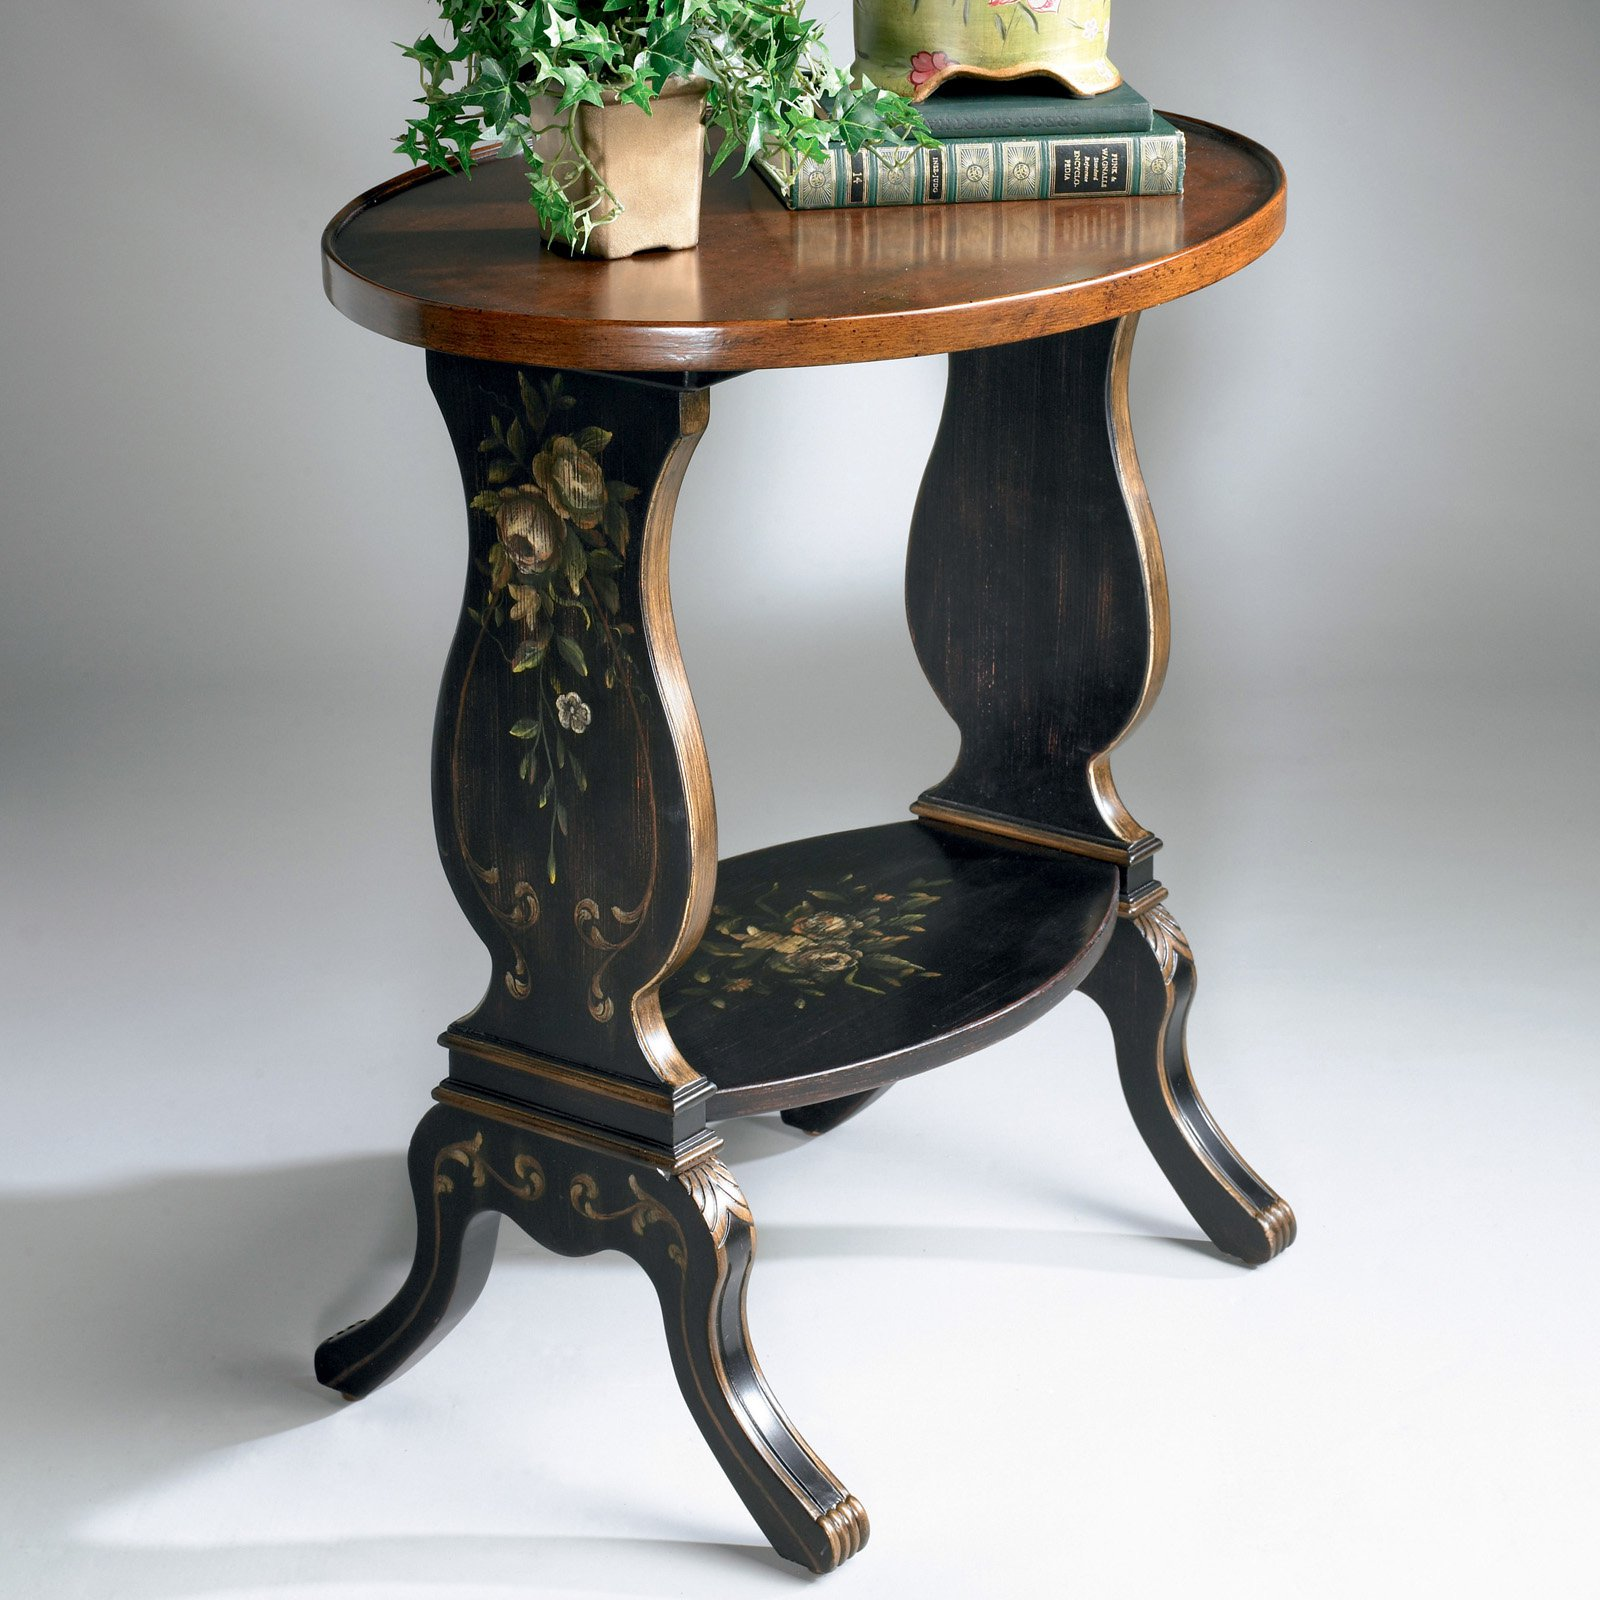 Butler Accent Table 26H in. - Regal Black Hand Painted